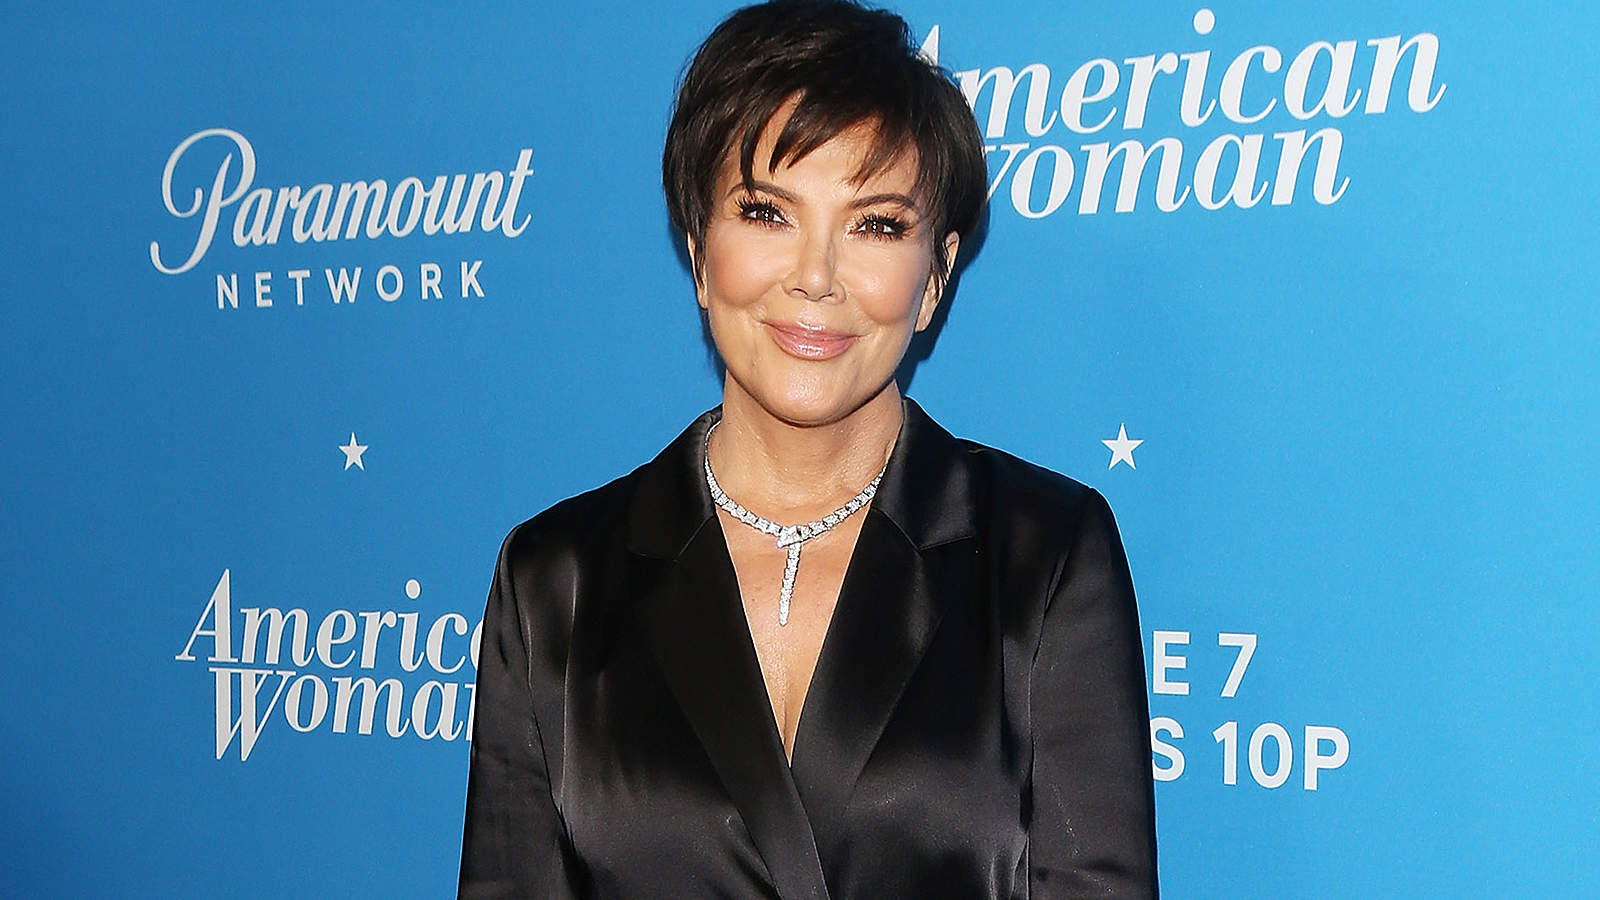 Kris Jenner Posts While Getting a Mammogram to Spread an Important Message About Breast Cancer